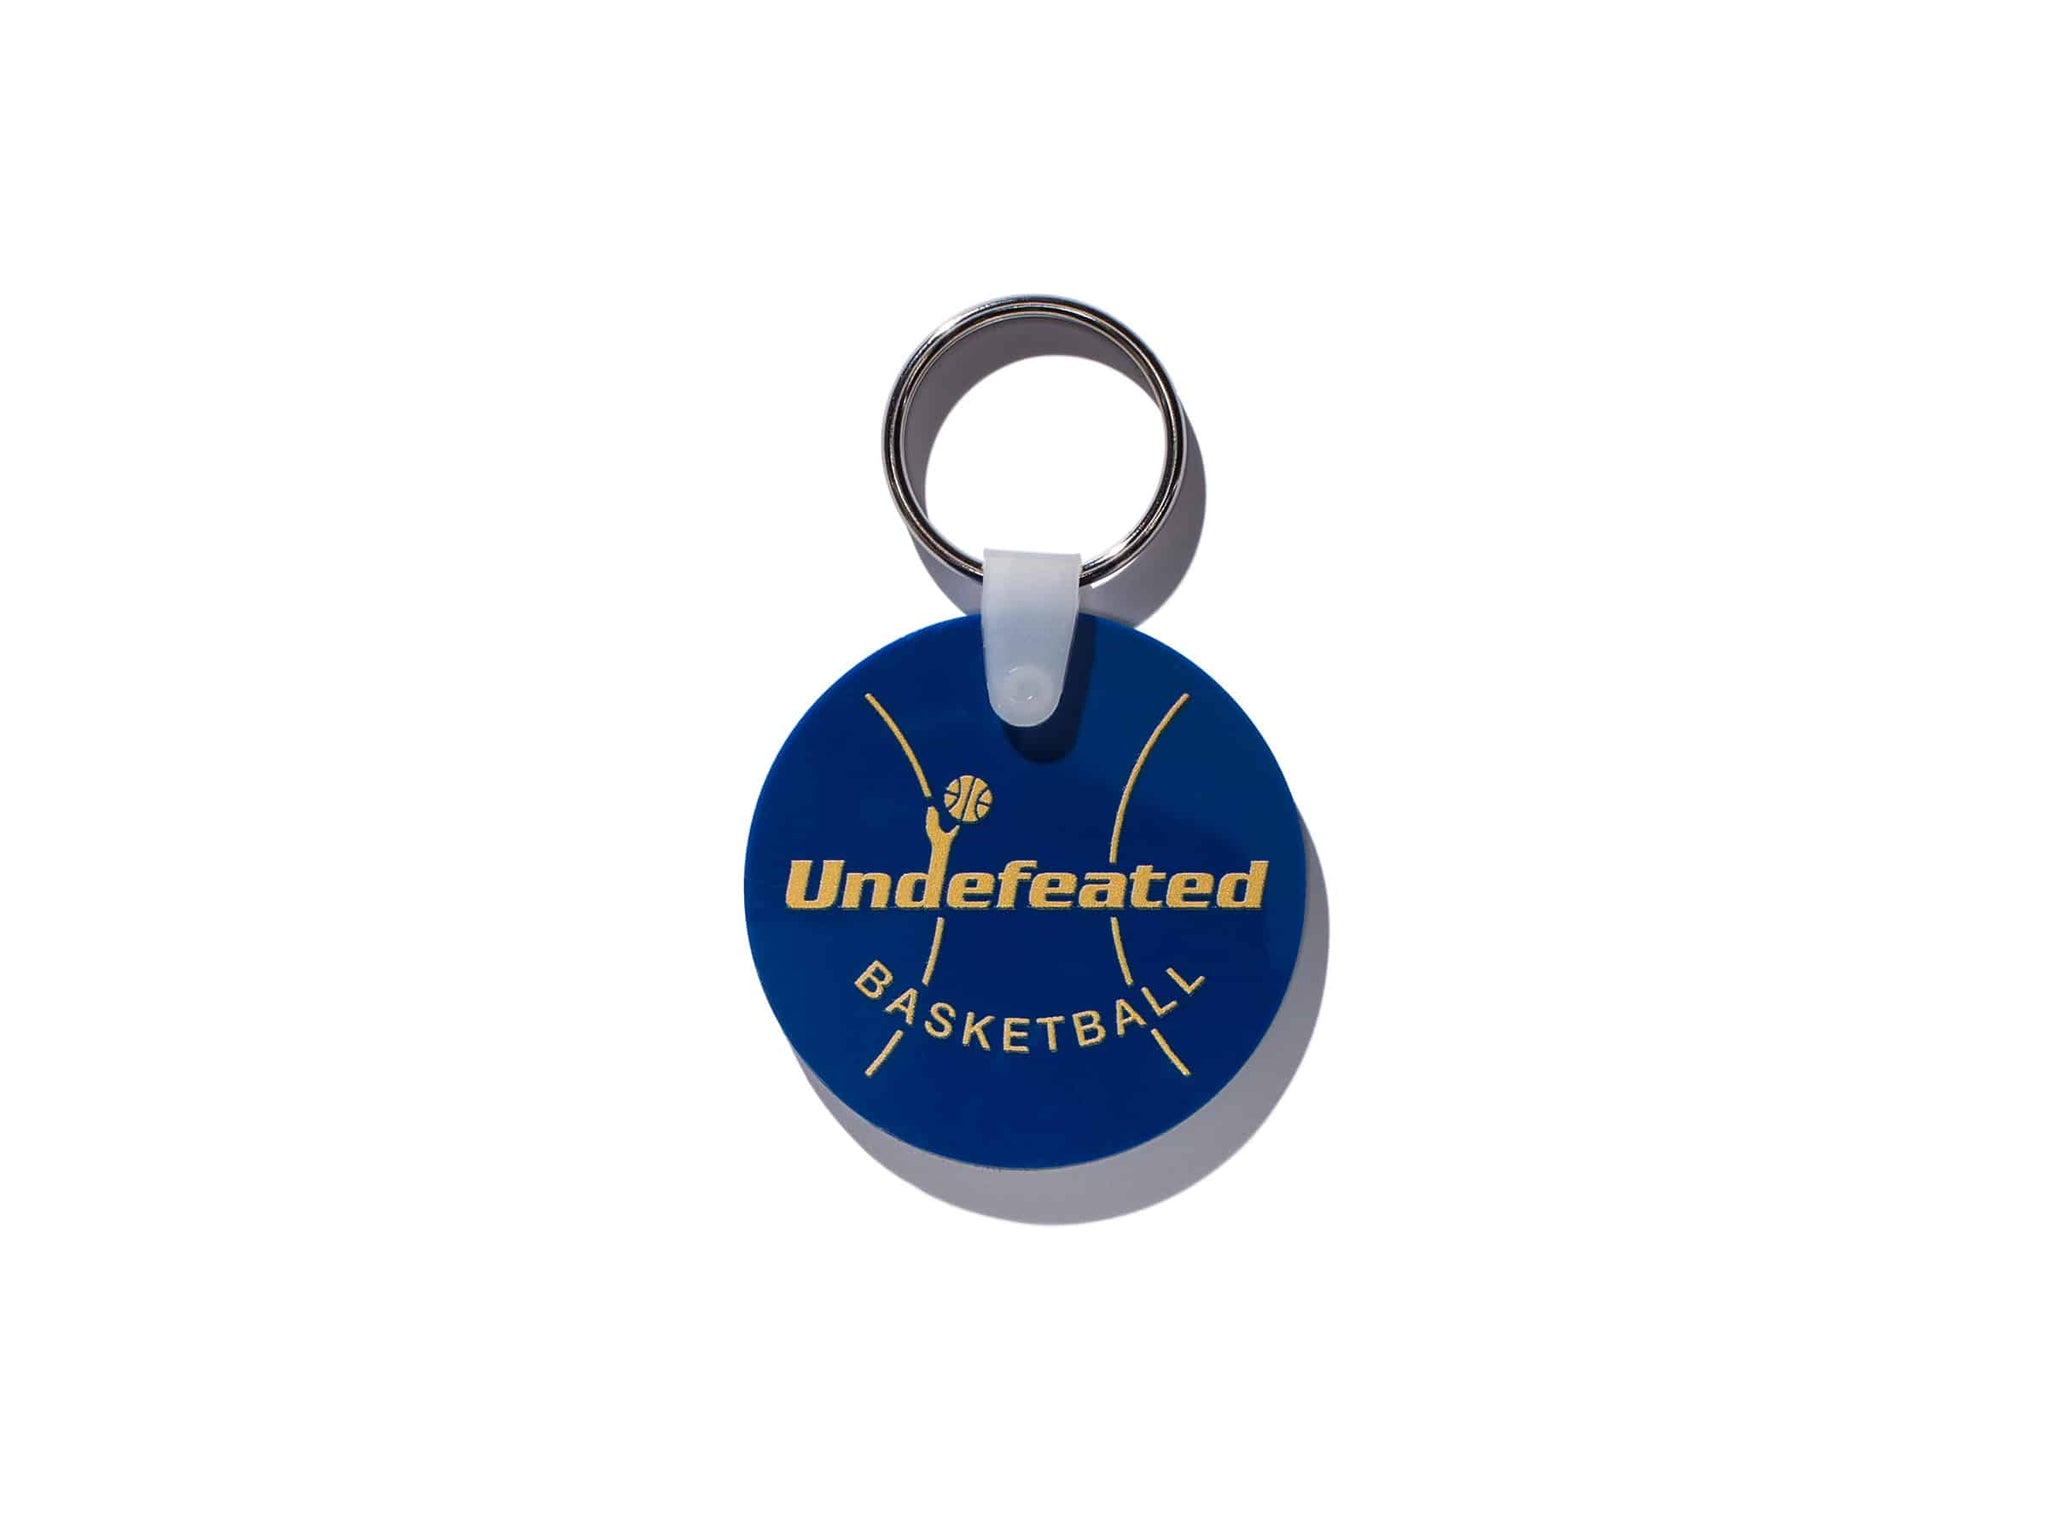 UNDEFEATED BASKETBALL KEYCHAIN